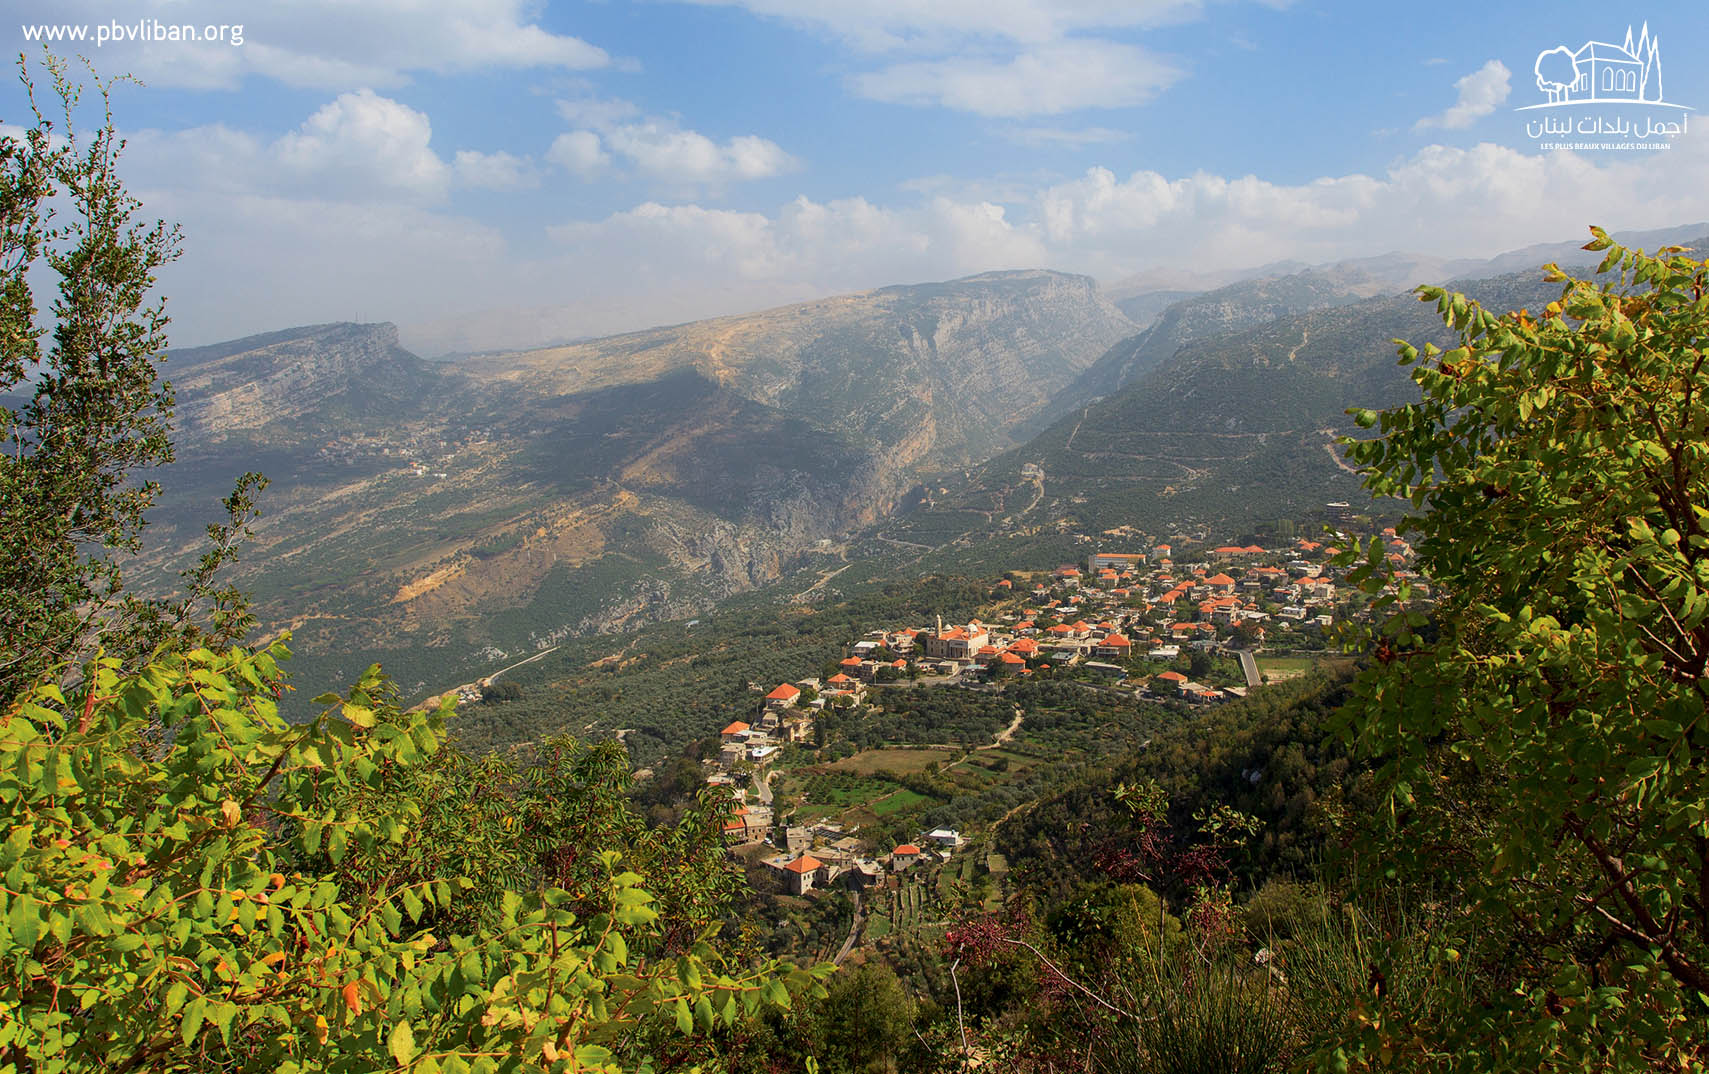 The labelled village of Douma in the Batroun area in northern Lebanon.  (pbvliban)